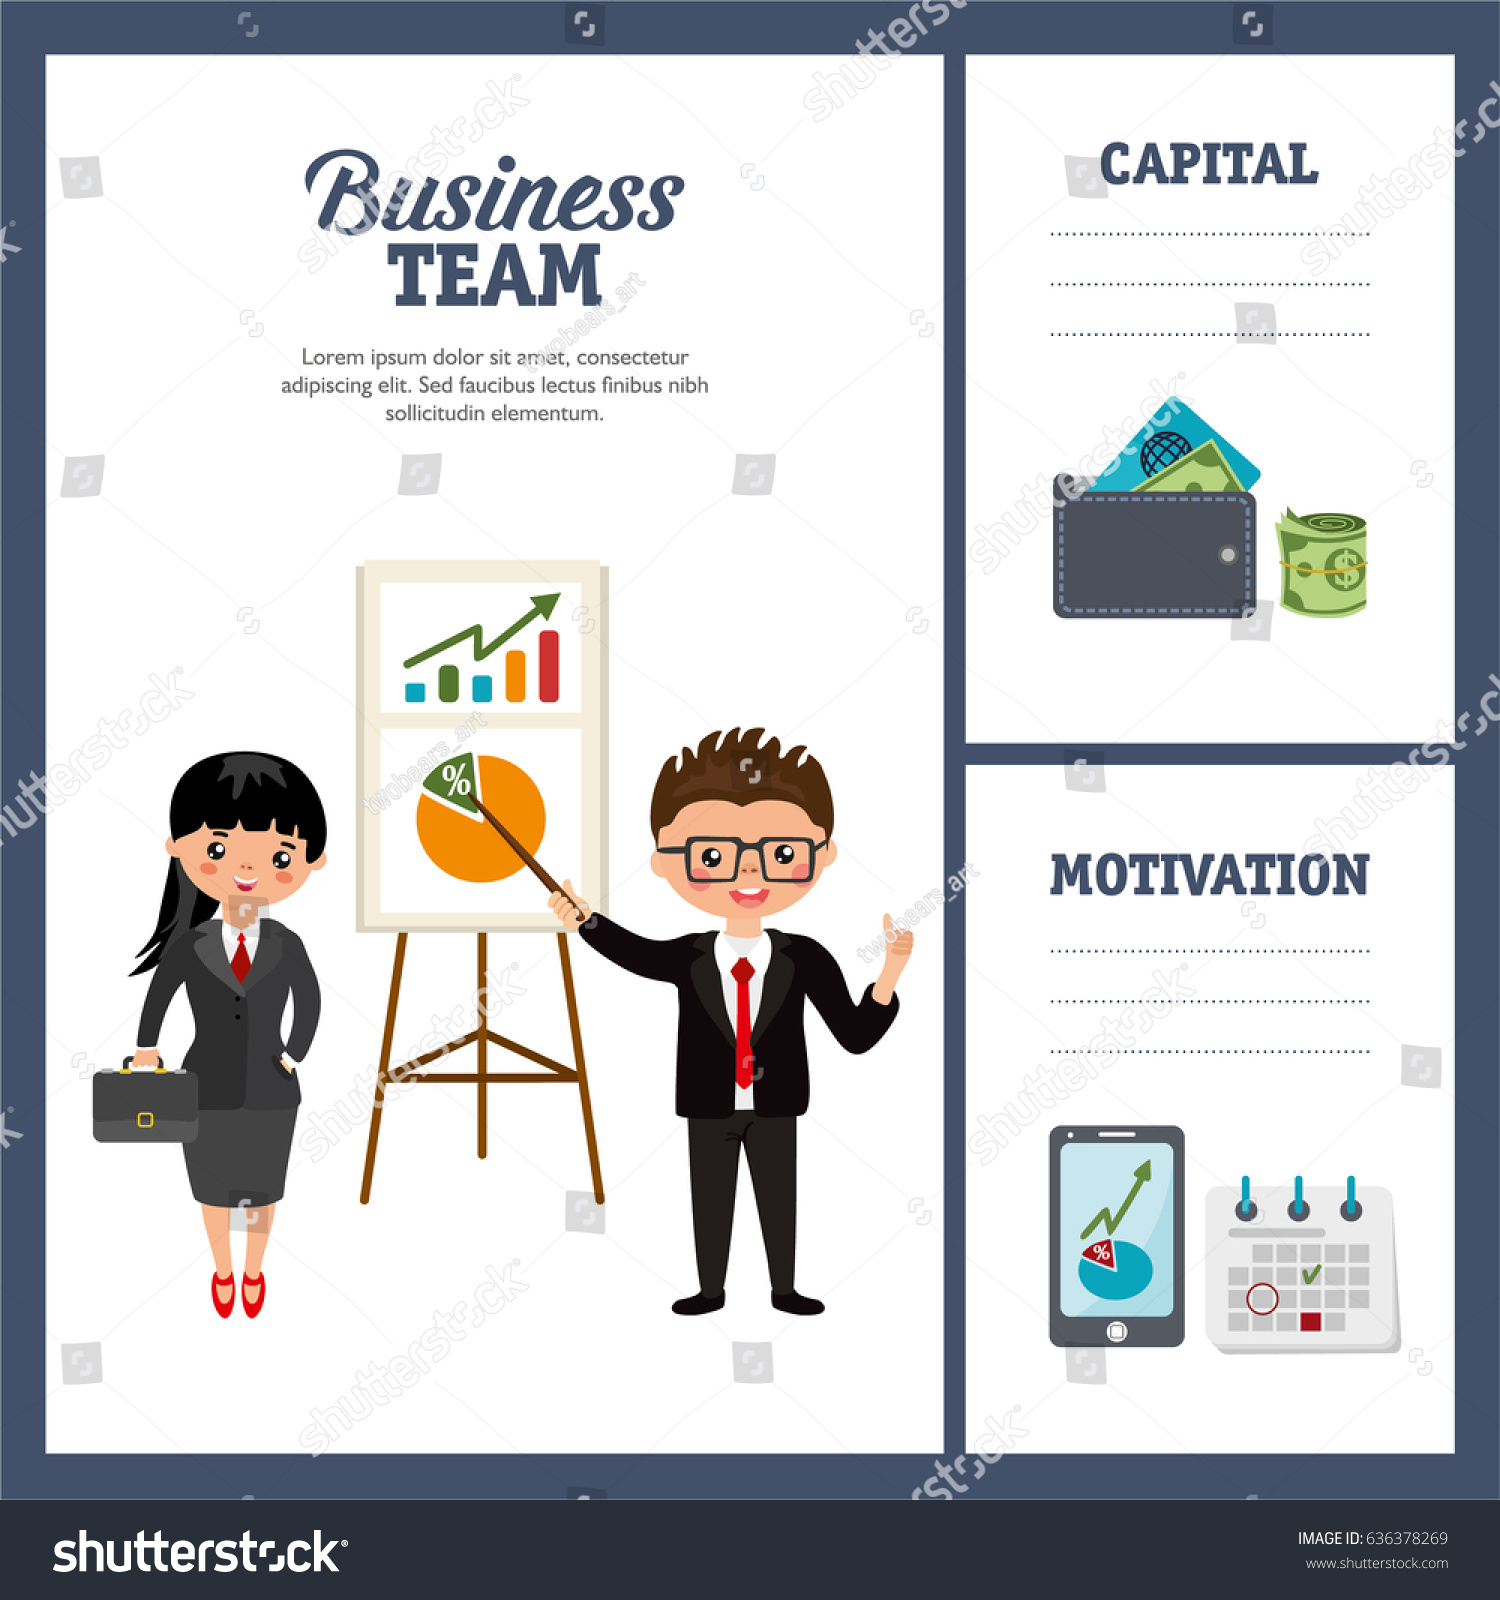 Cool Team Business Cards Ideas - Business Card Ideas - etadam.info